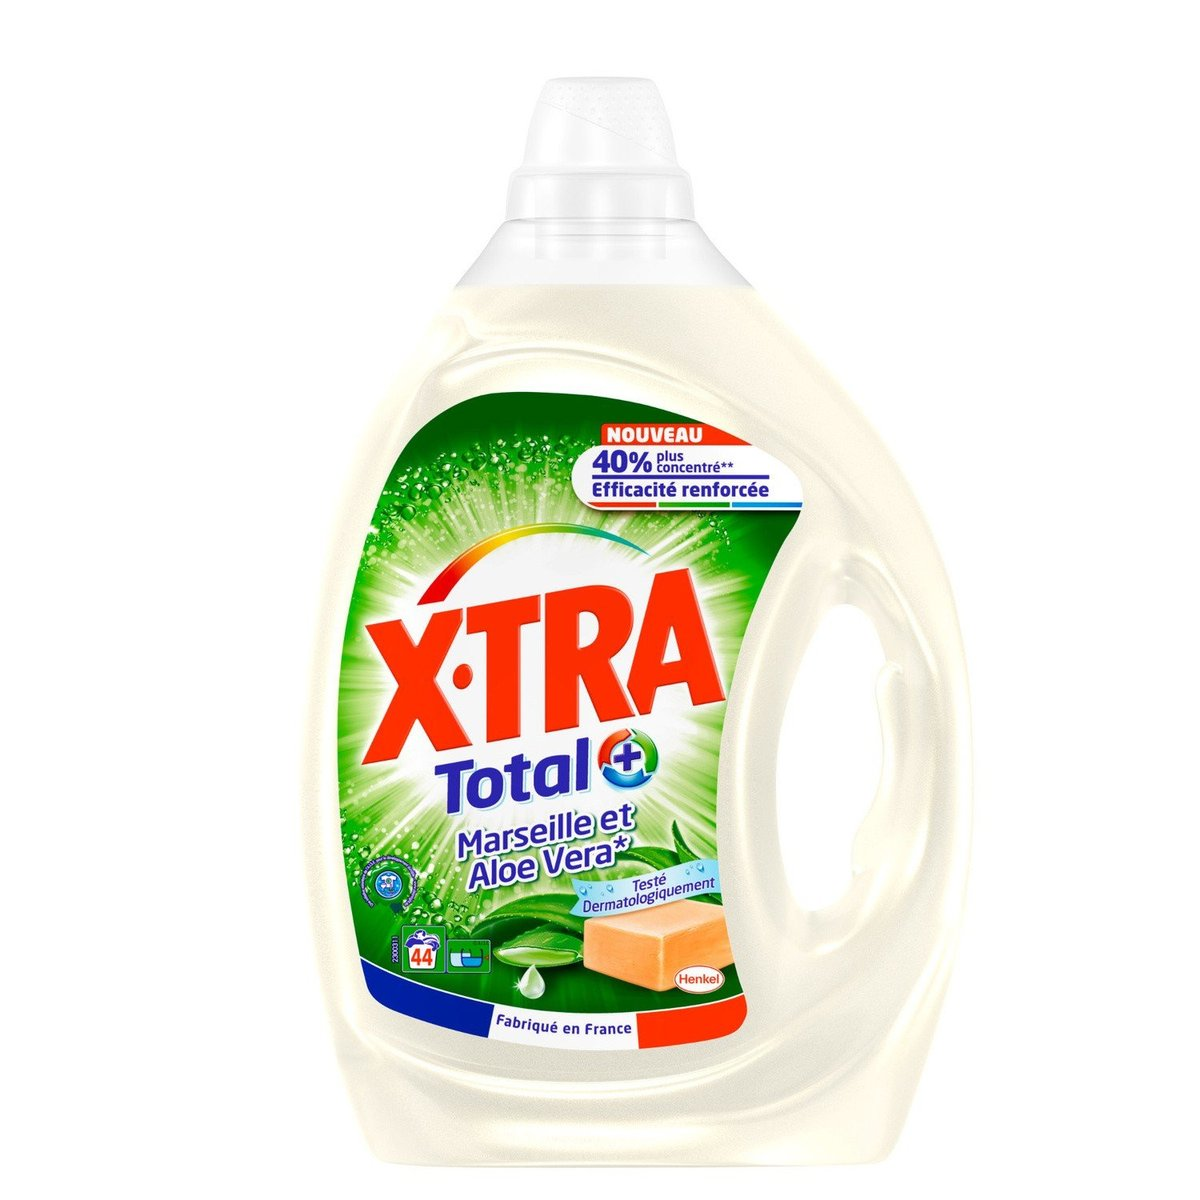 XTRA - Laundry Detergent (Aloe Vera & Marseille Fragrance) - 2.2L